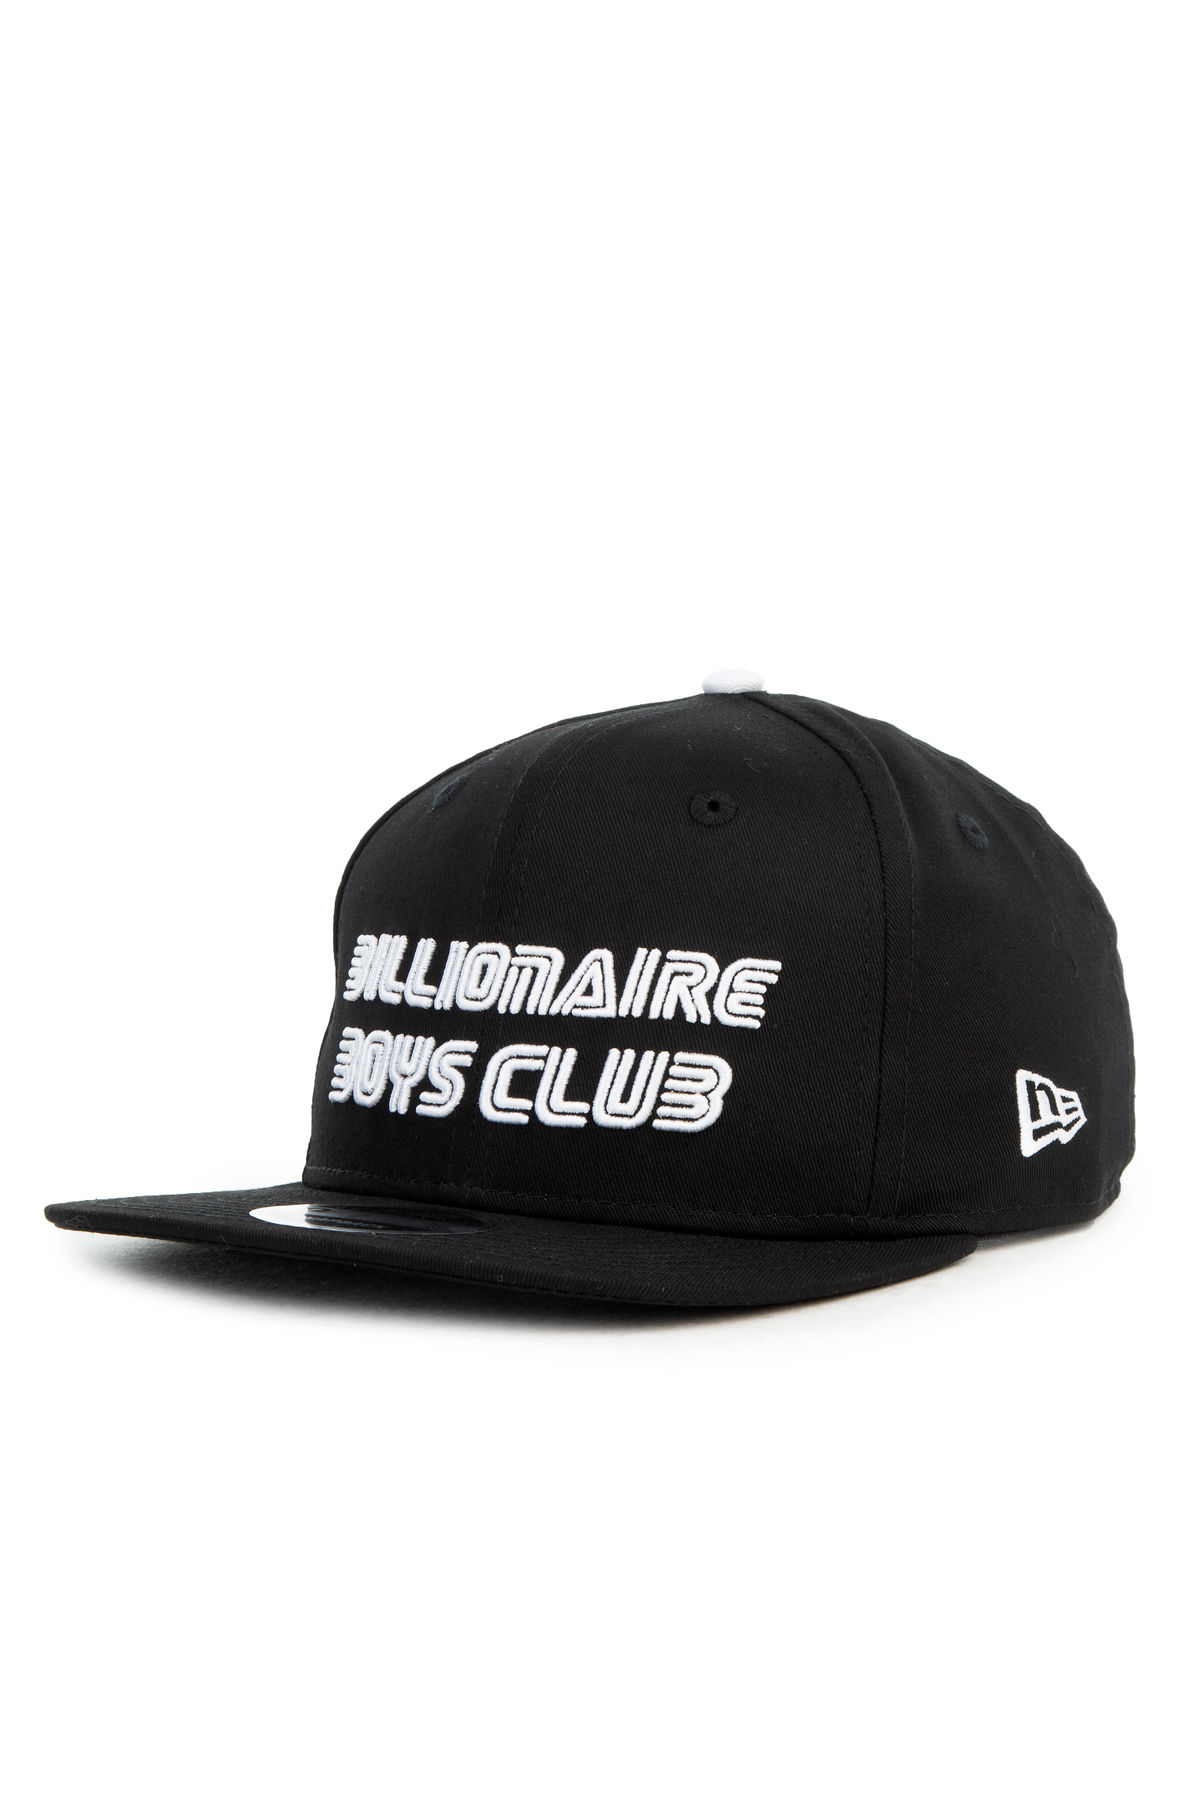 Image of The Boys Club Snapback Hat in Black